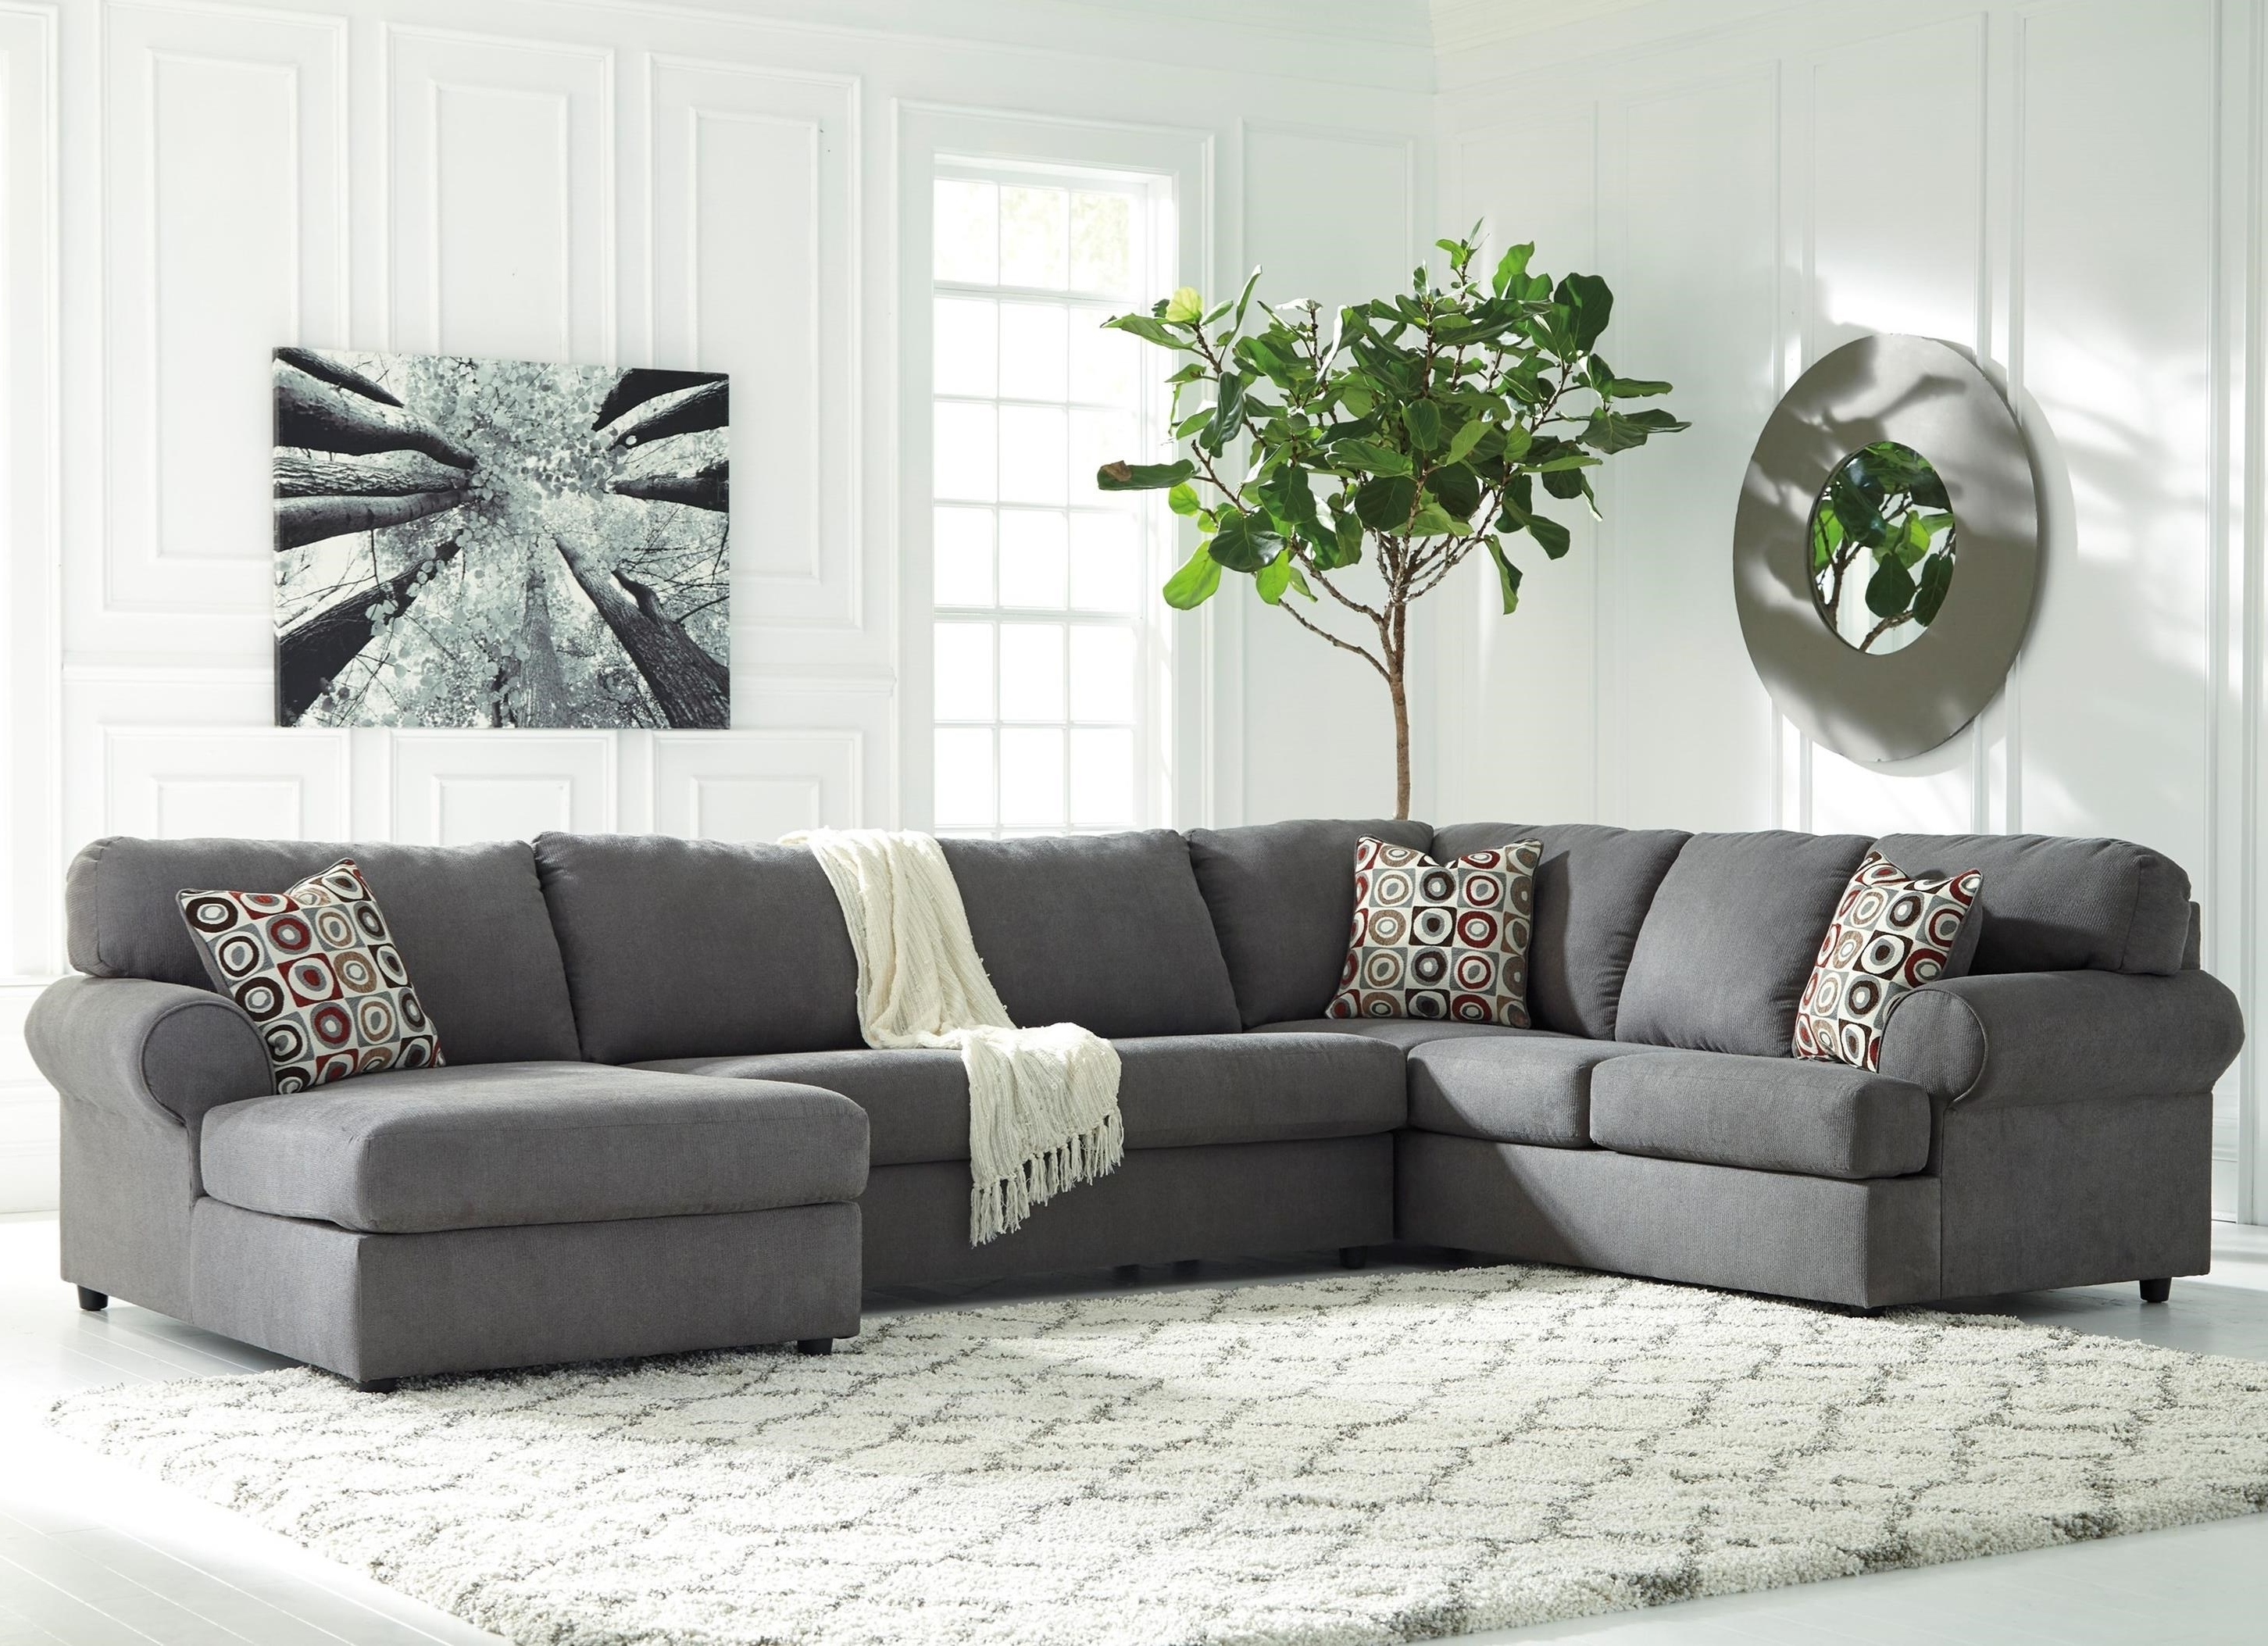 Best And Newest Signature Designashley Jayceon 3 Piece Sectional With Right In 3 Piece Sectionals With Chaise (View 6 of 15)